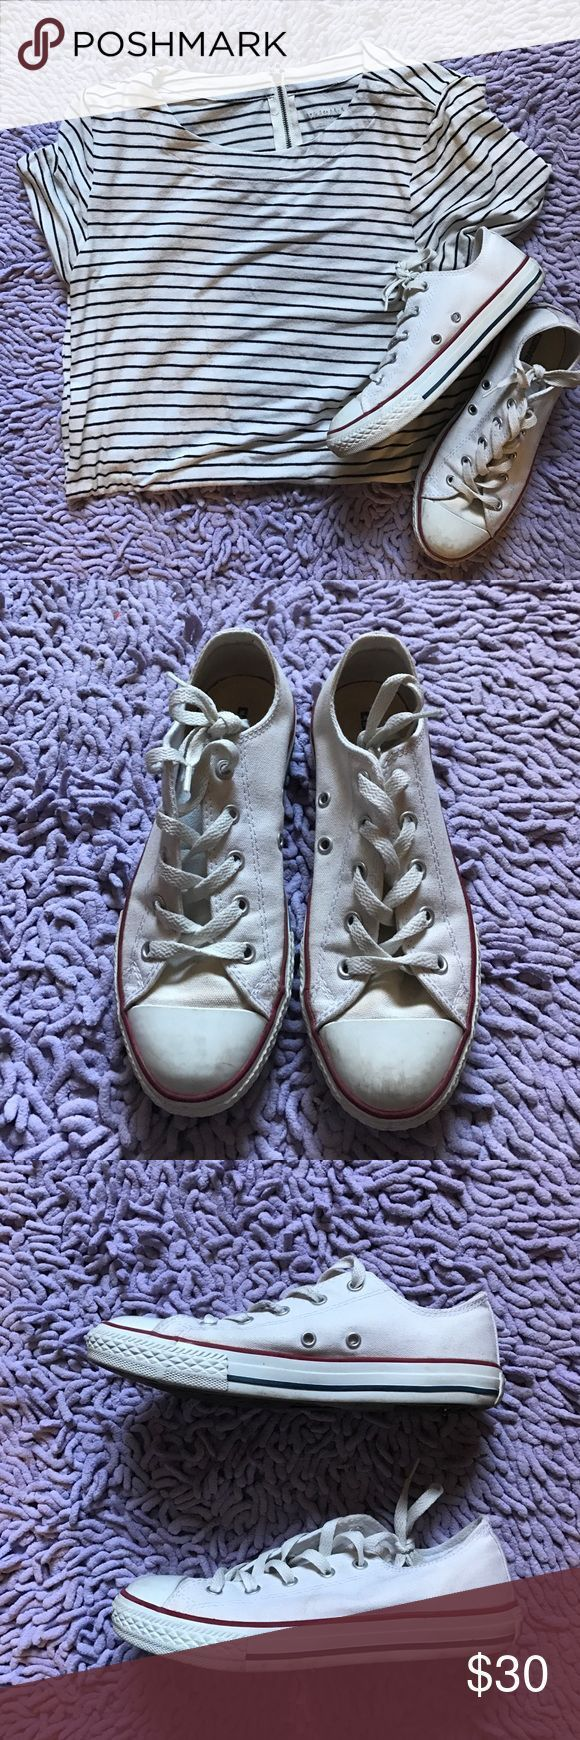 Tendance Basket 2017  Low rise original white converse Worn only a handful of times. Almost in perfect